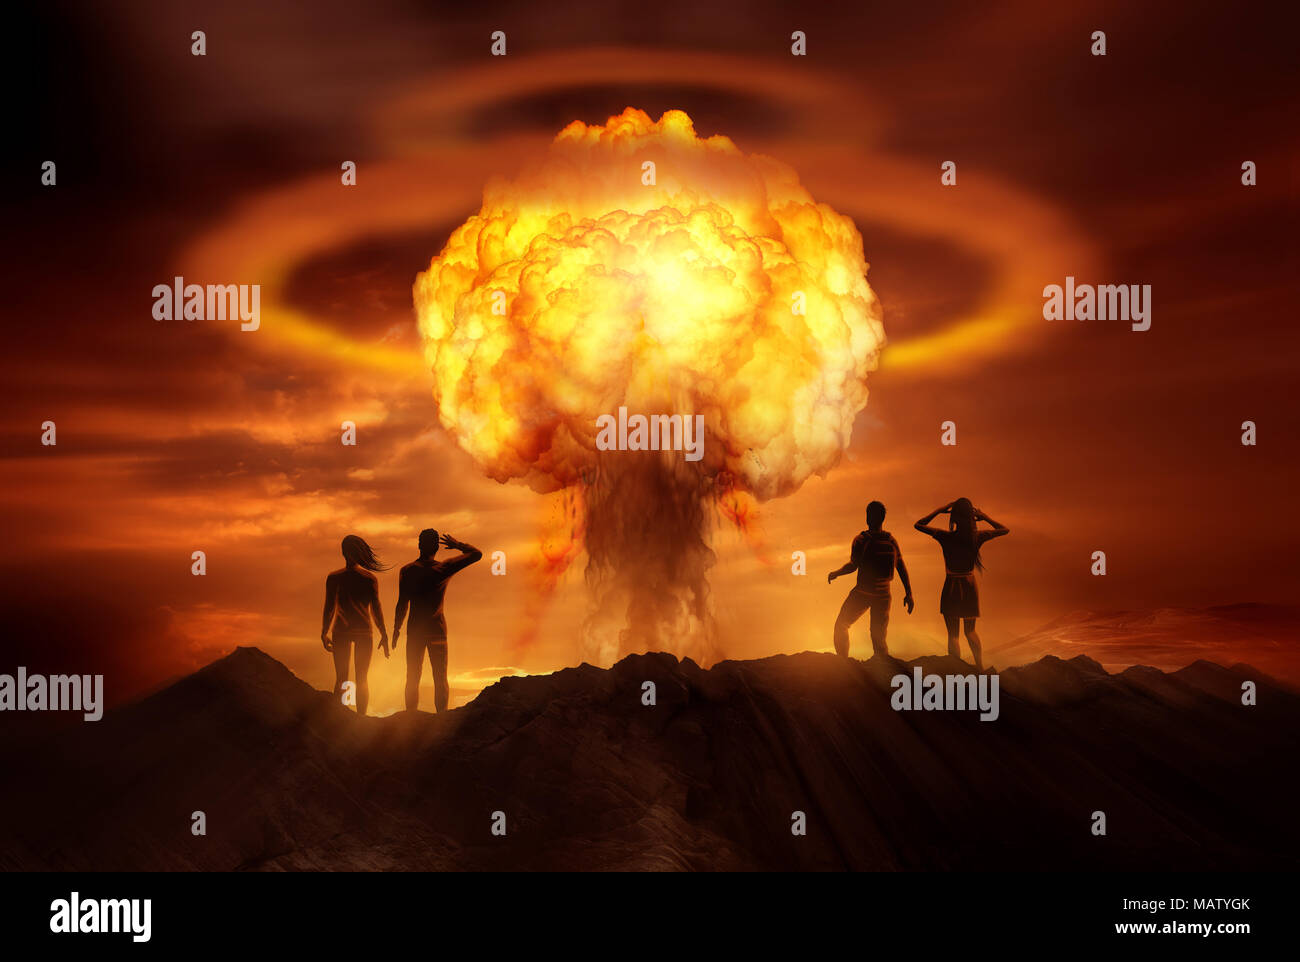 People watching the end of the world as a nuclear bomb explodes in front of them. Mixed media illustration. - Stock Image